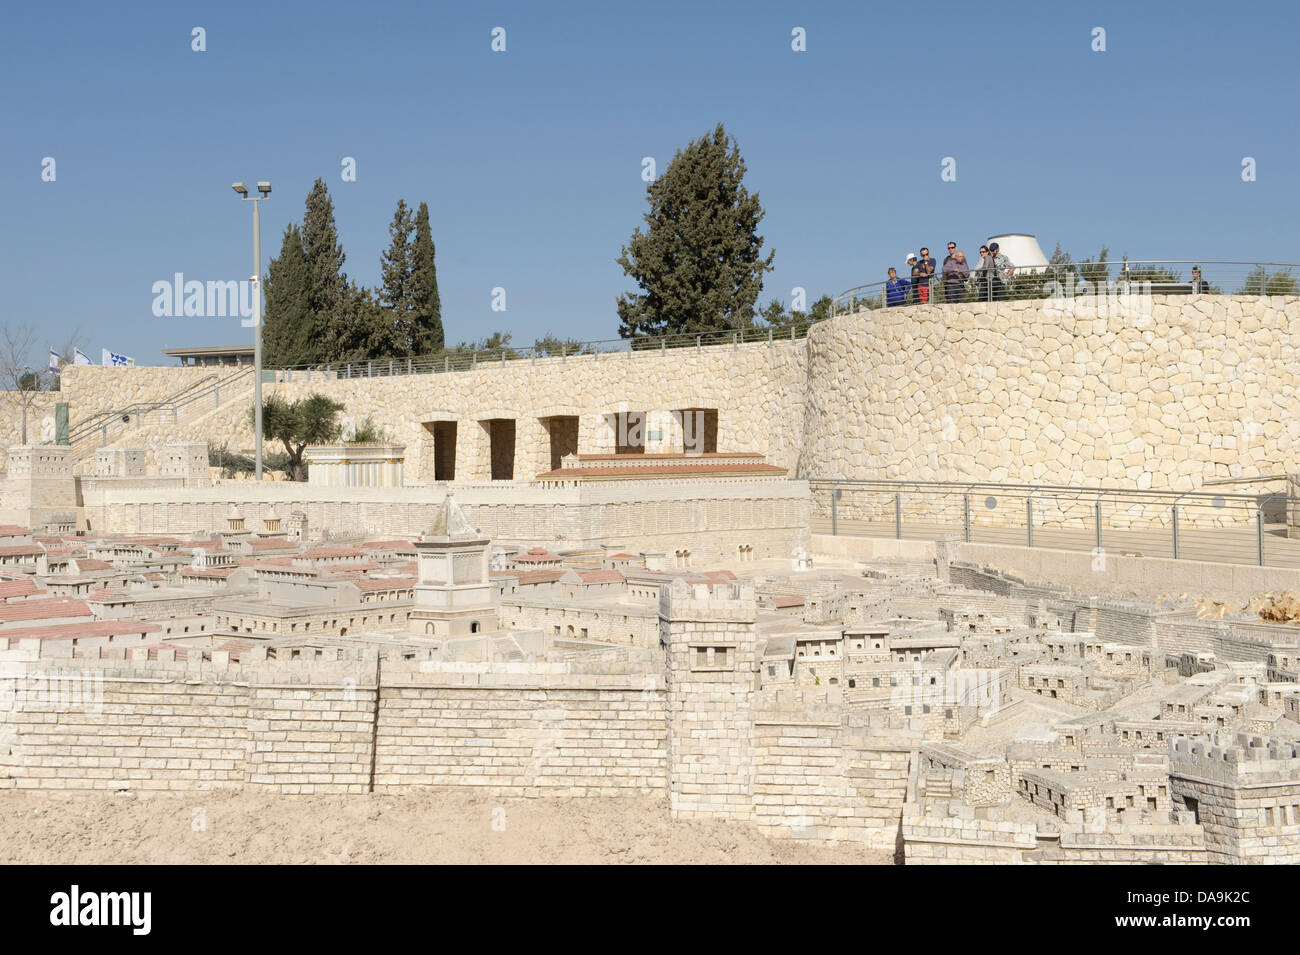 Israel, Israel museum, Jerusalem, model, copy, reproduction, Middle East, Near East, miniature, town, city, Stock Photo